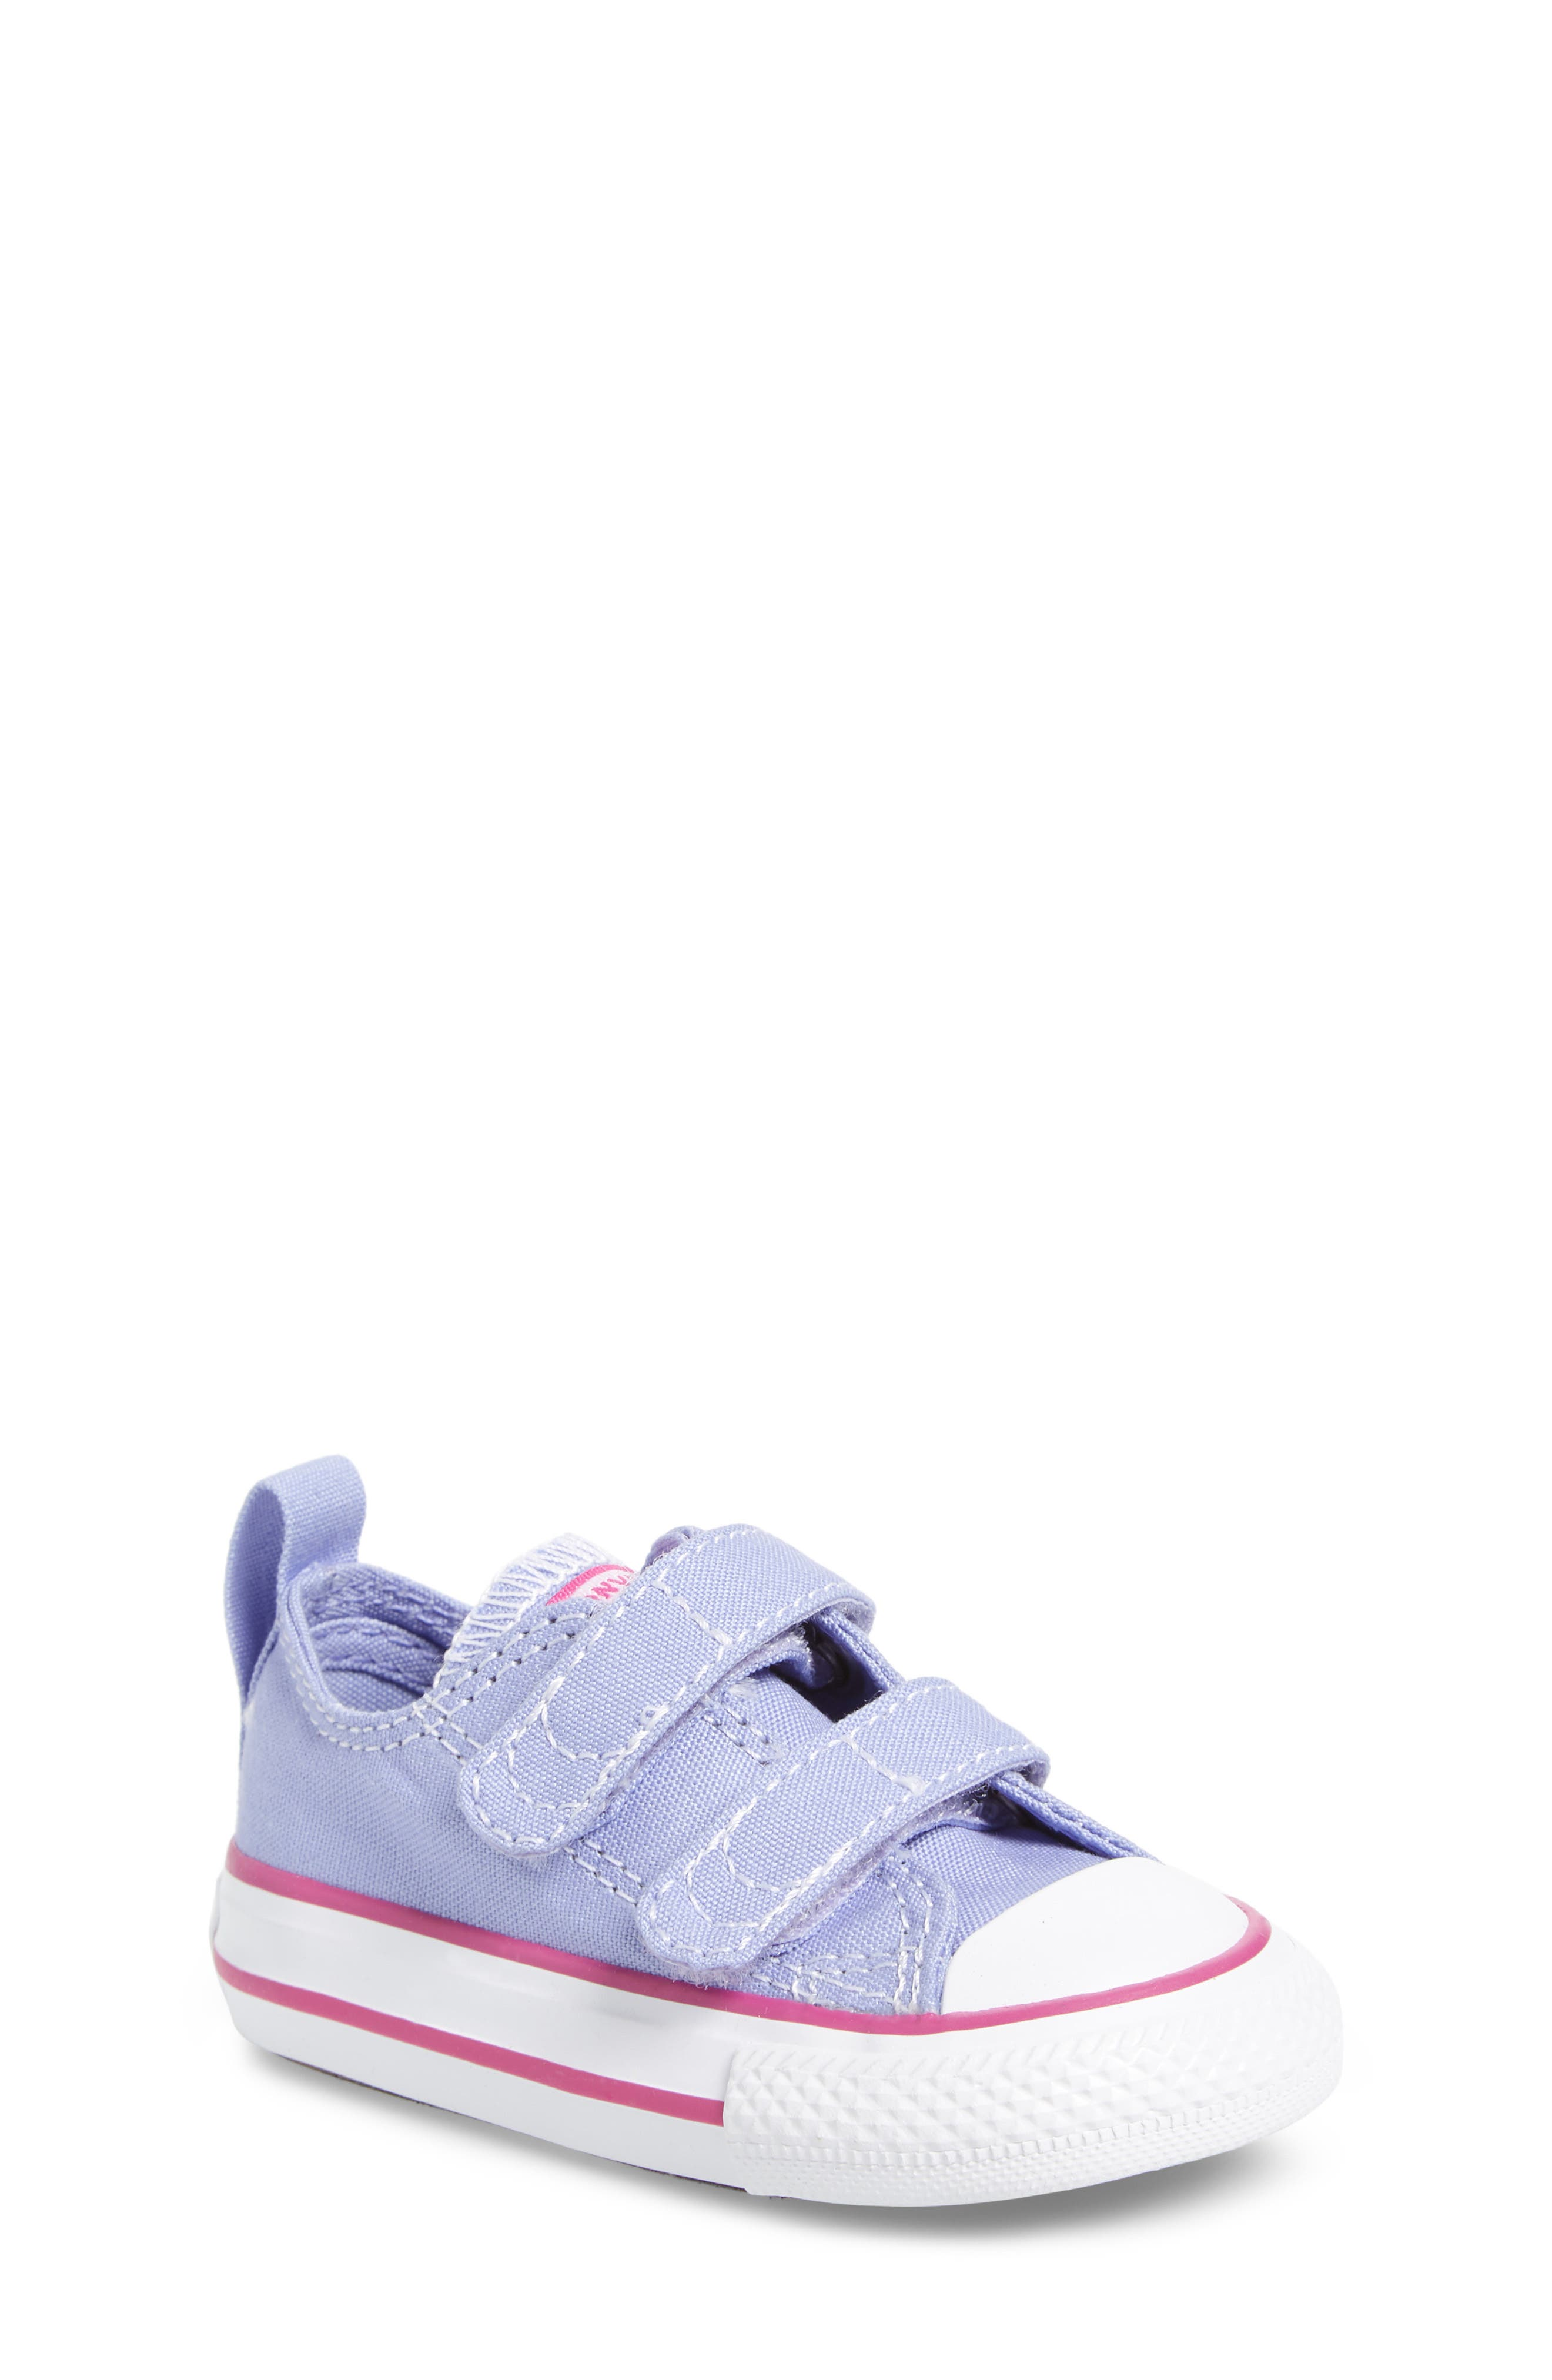 All Star<sup>®</sup> 2V Low Top Sneaker,                             Main thumbnail 1, color,                             Twilight Purple